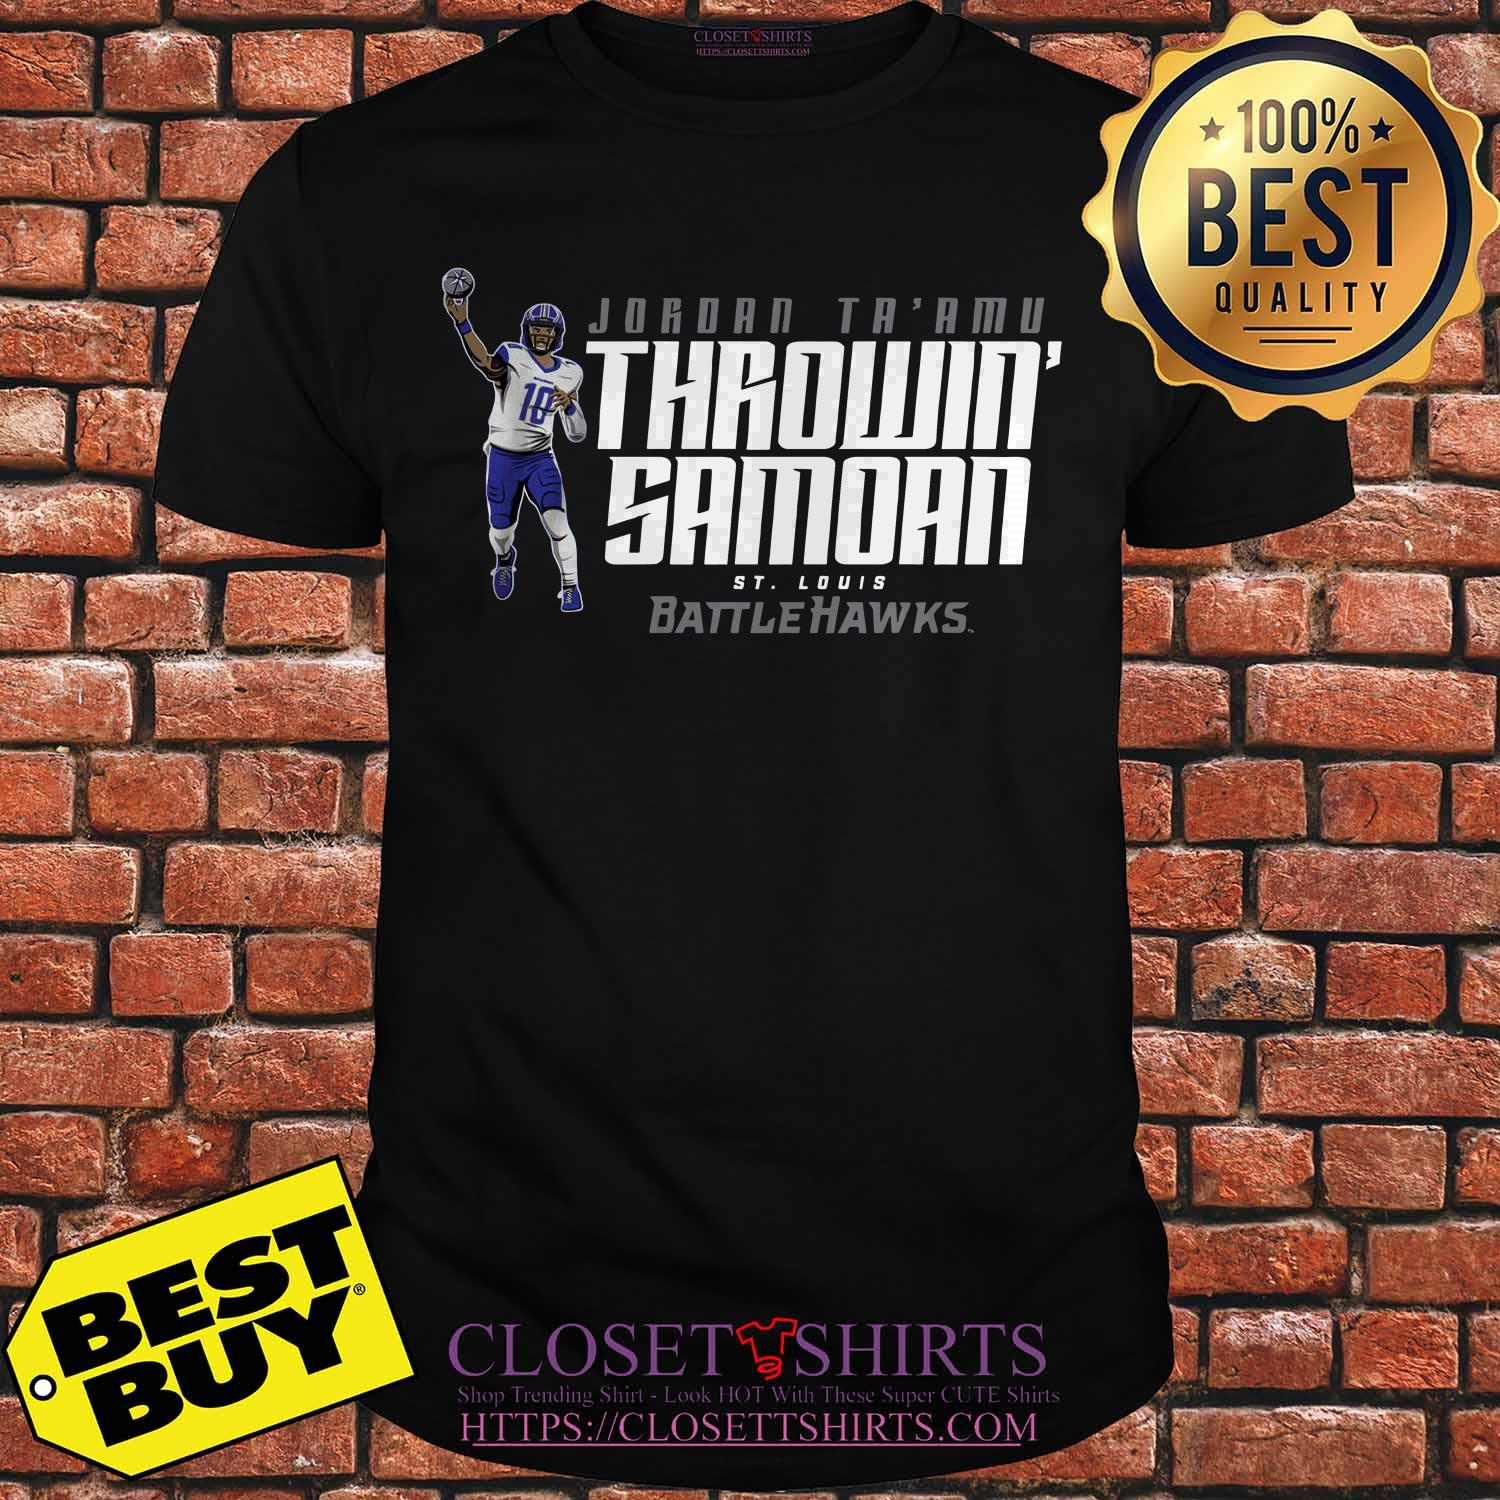 Jordan Ta'amu Throwin Samoan St.louis Battlehawks Shirt